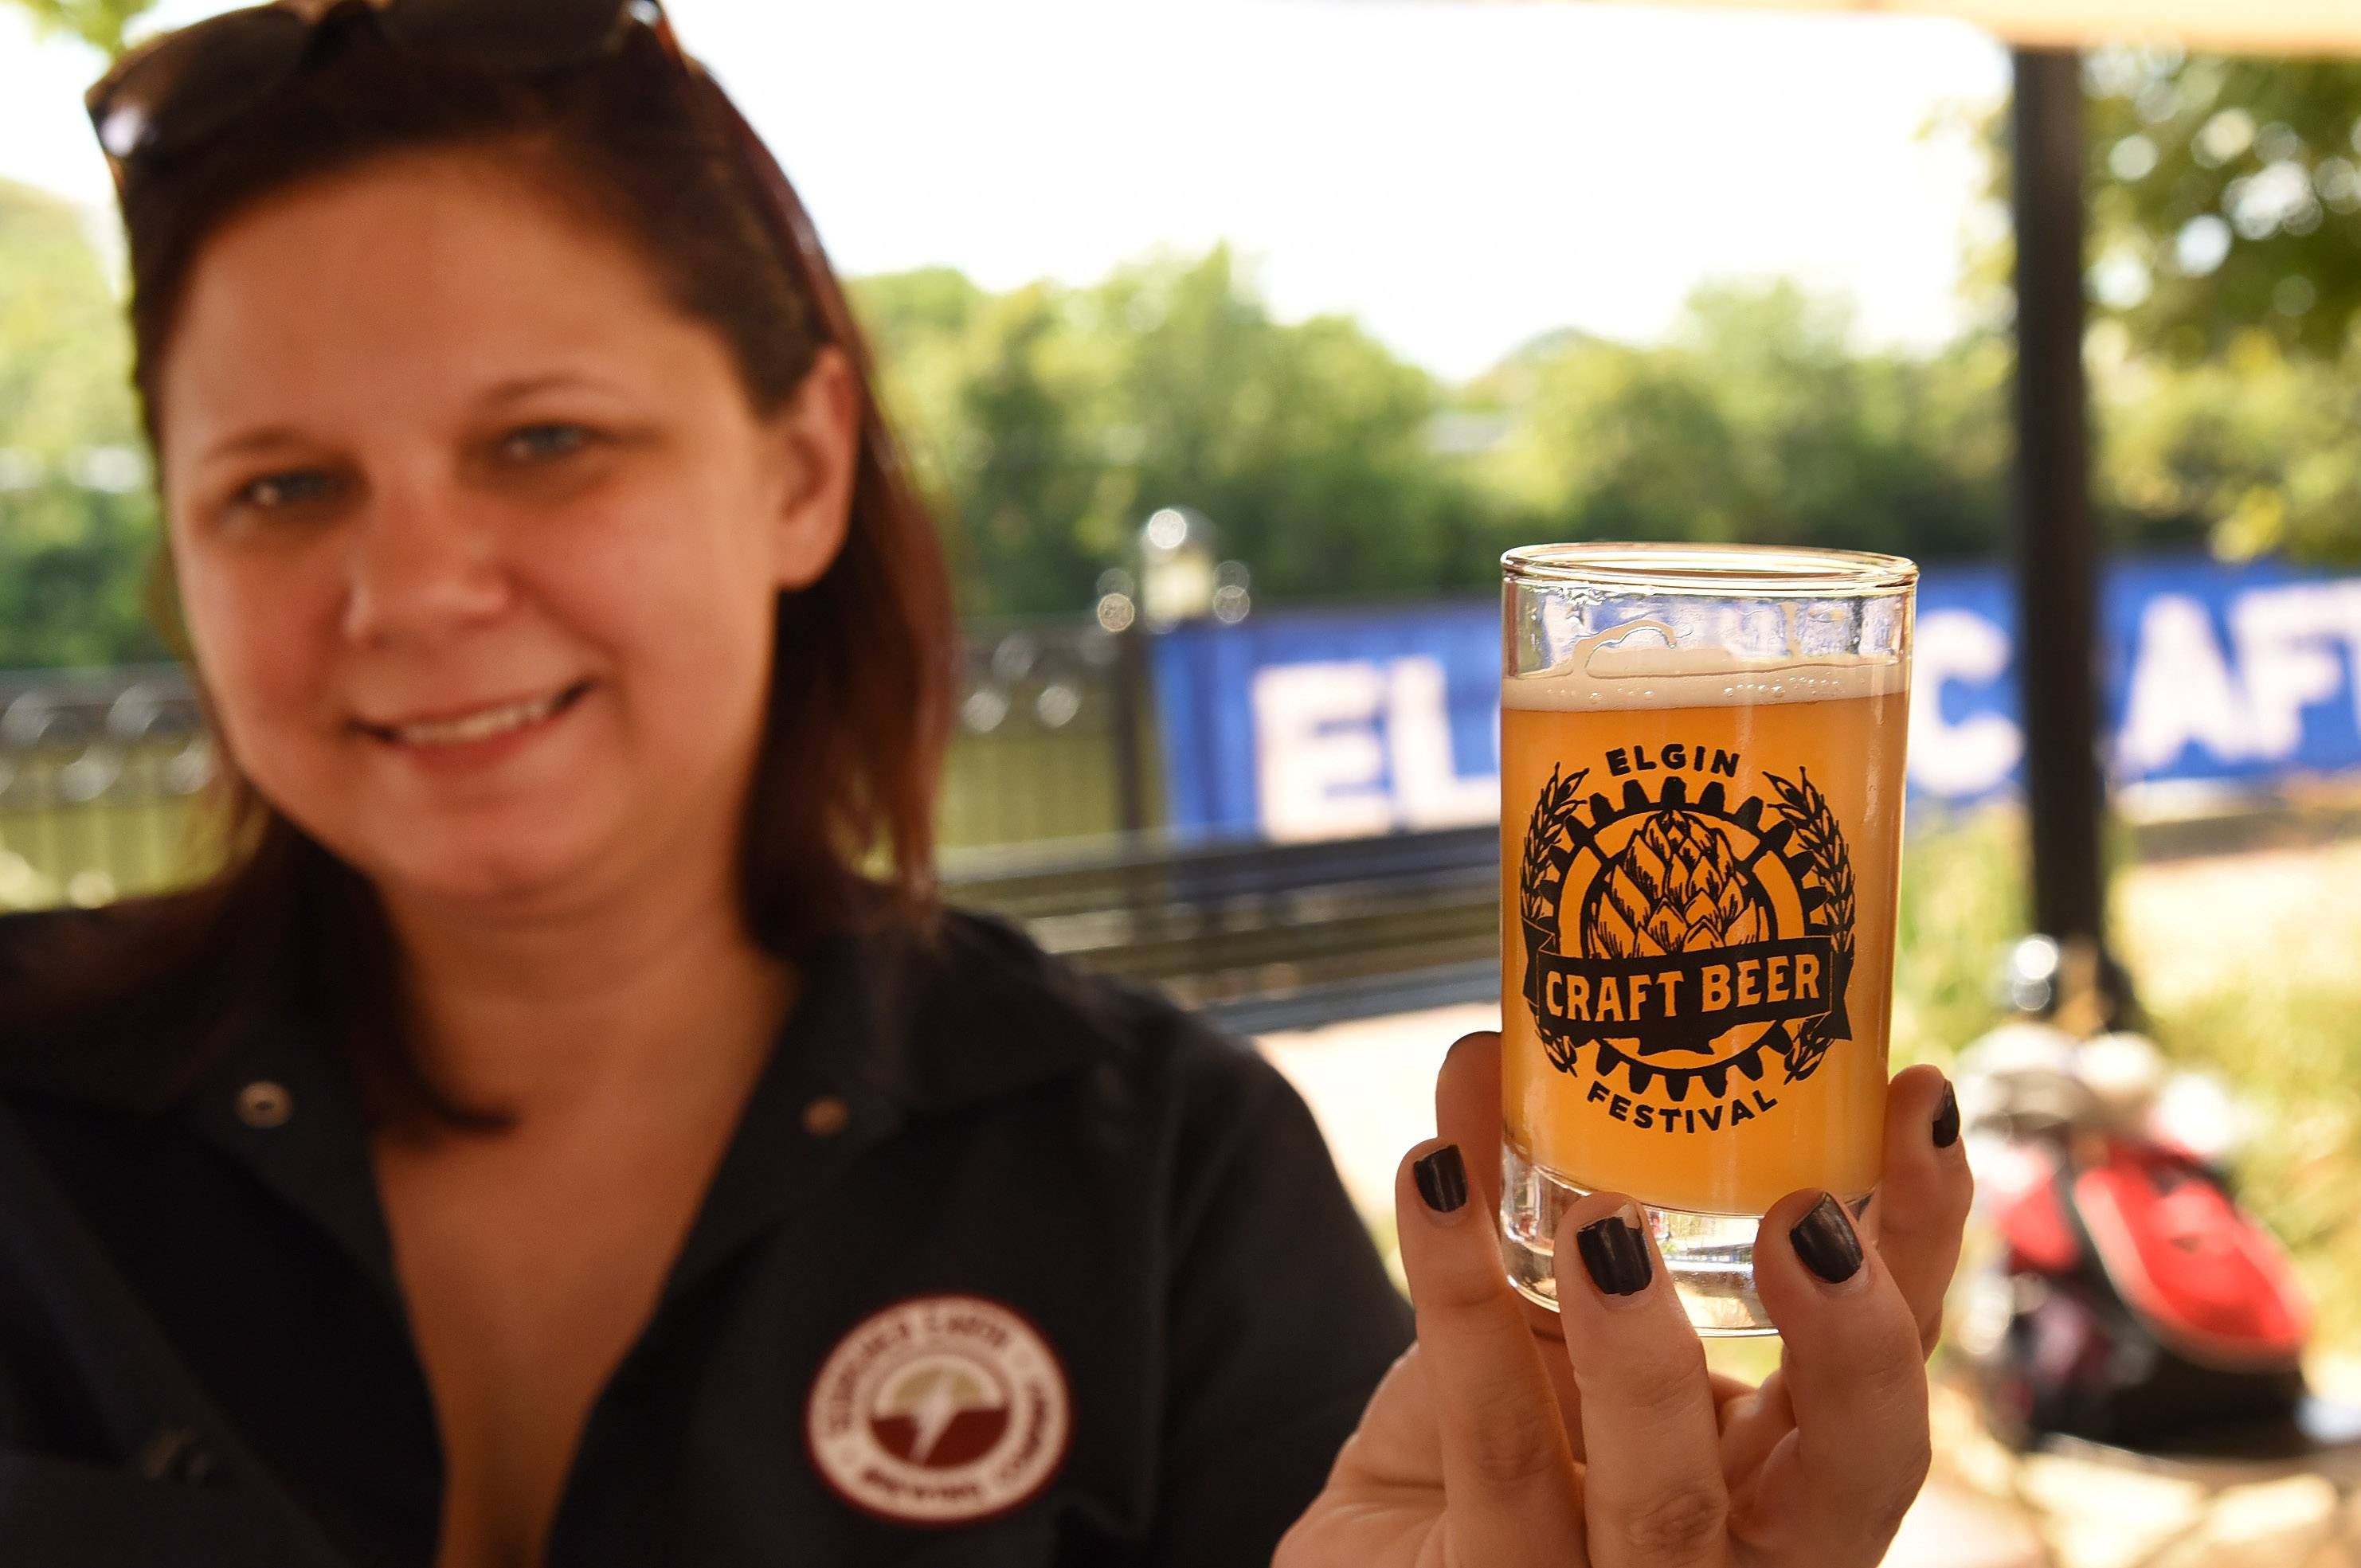 Megan Lange of Scorched Earth Brewery in Algonquin holds up one of its brews at the Elgin Craft Beer Festival Saturday.